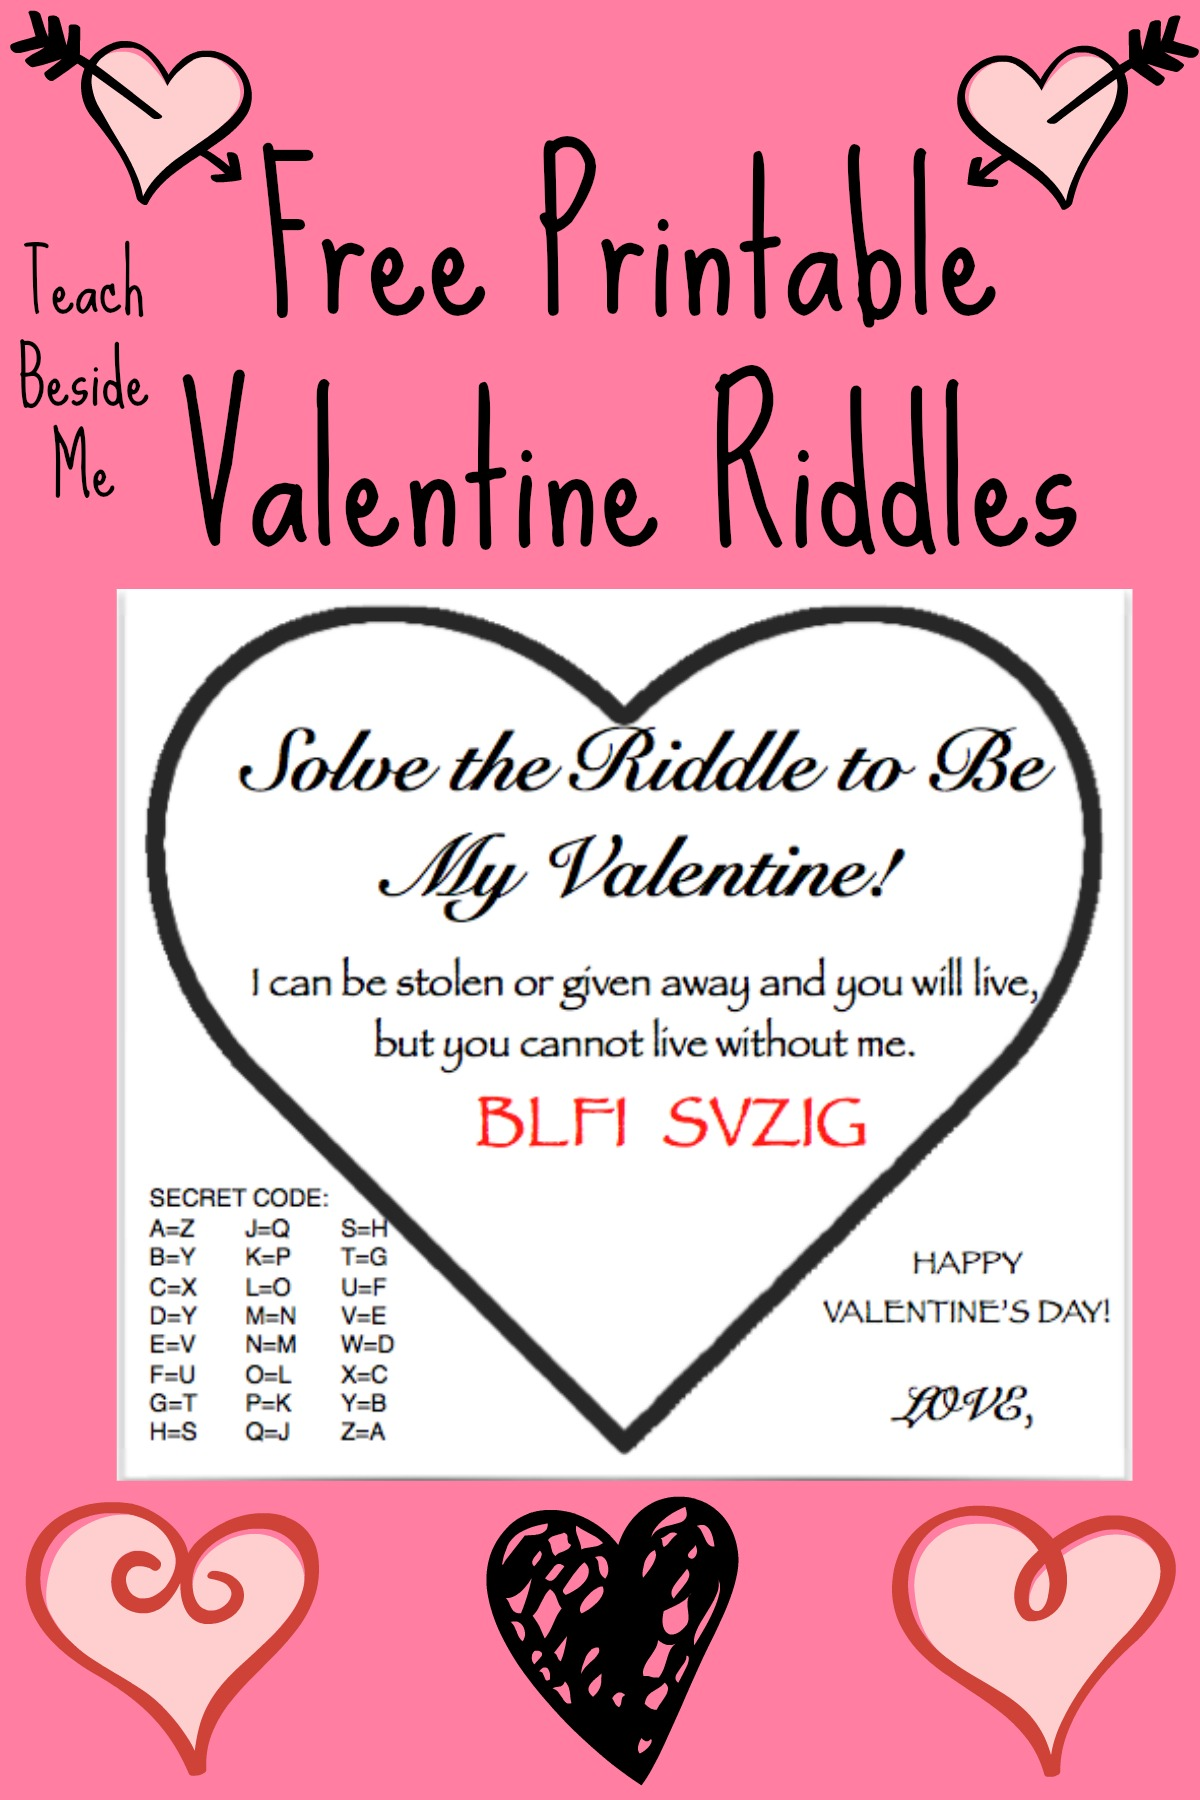 image regarding Free Printable Valentine Cards for Adults named Absolutely free Printable Valentine Riddle Playing cards Practice Beside Me